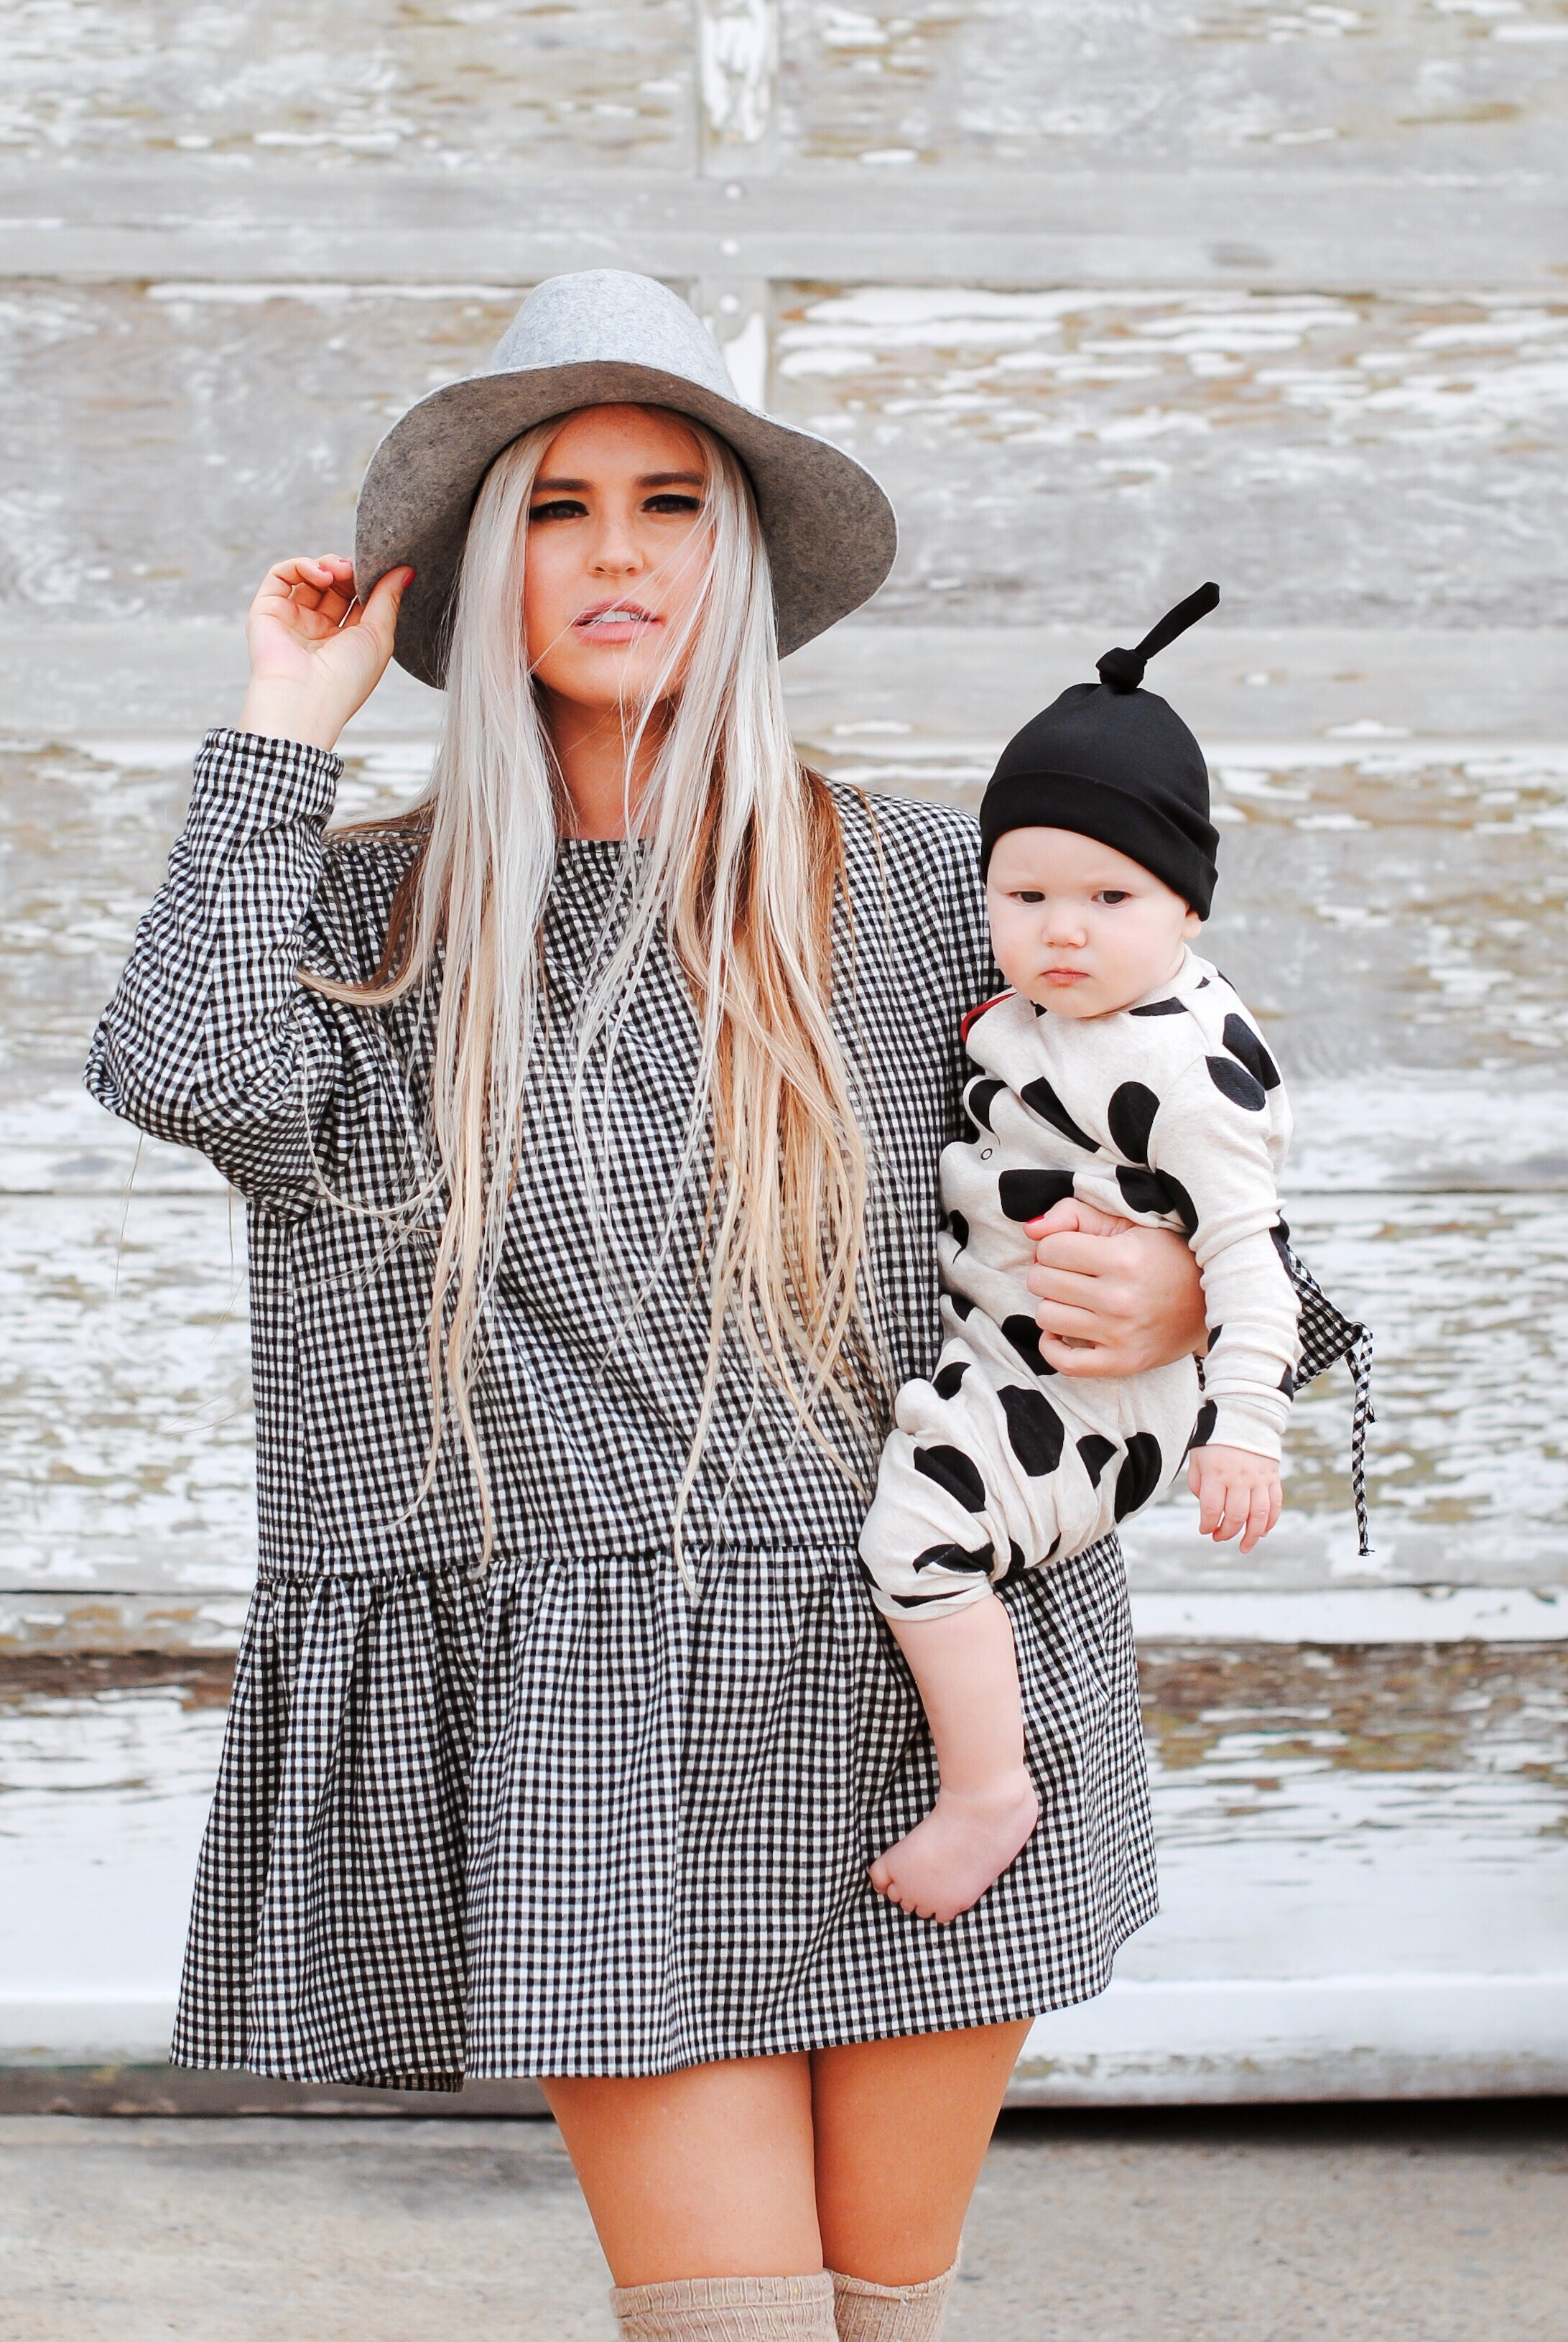 Stephany Bowman from Stephany's Choice wearing Zara black and white smocked dress, over the knee cream knit socks from Free People and Black Mary Jane heels from Topshop. Fedora is from Target. Baby Angelina Bowman is wearing Colored Orangics from head to toe